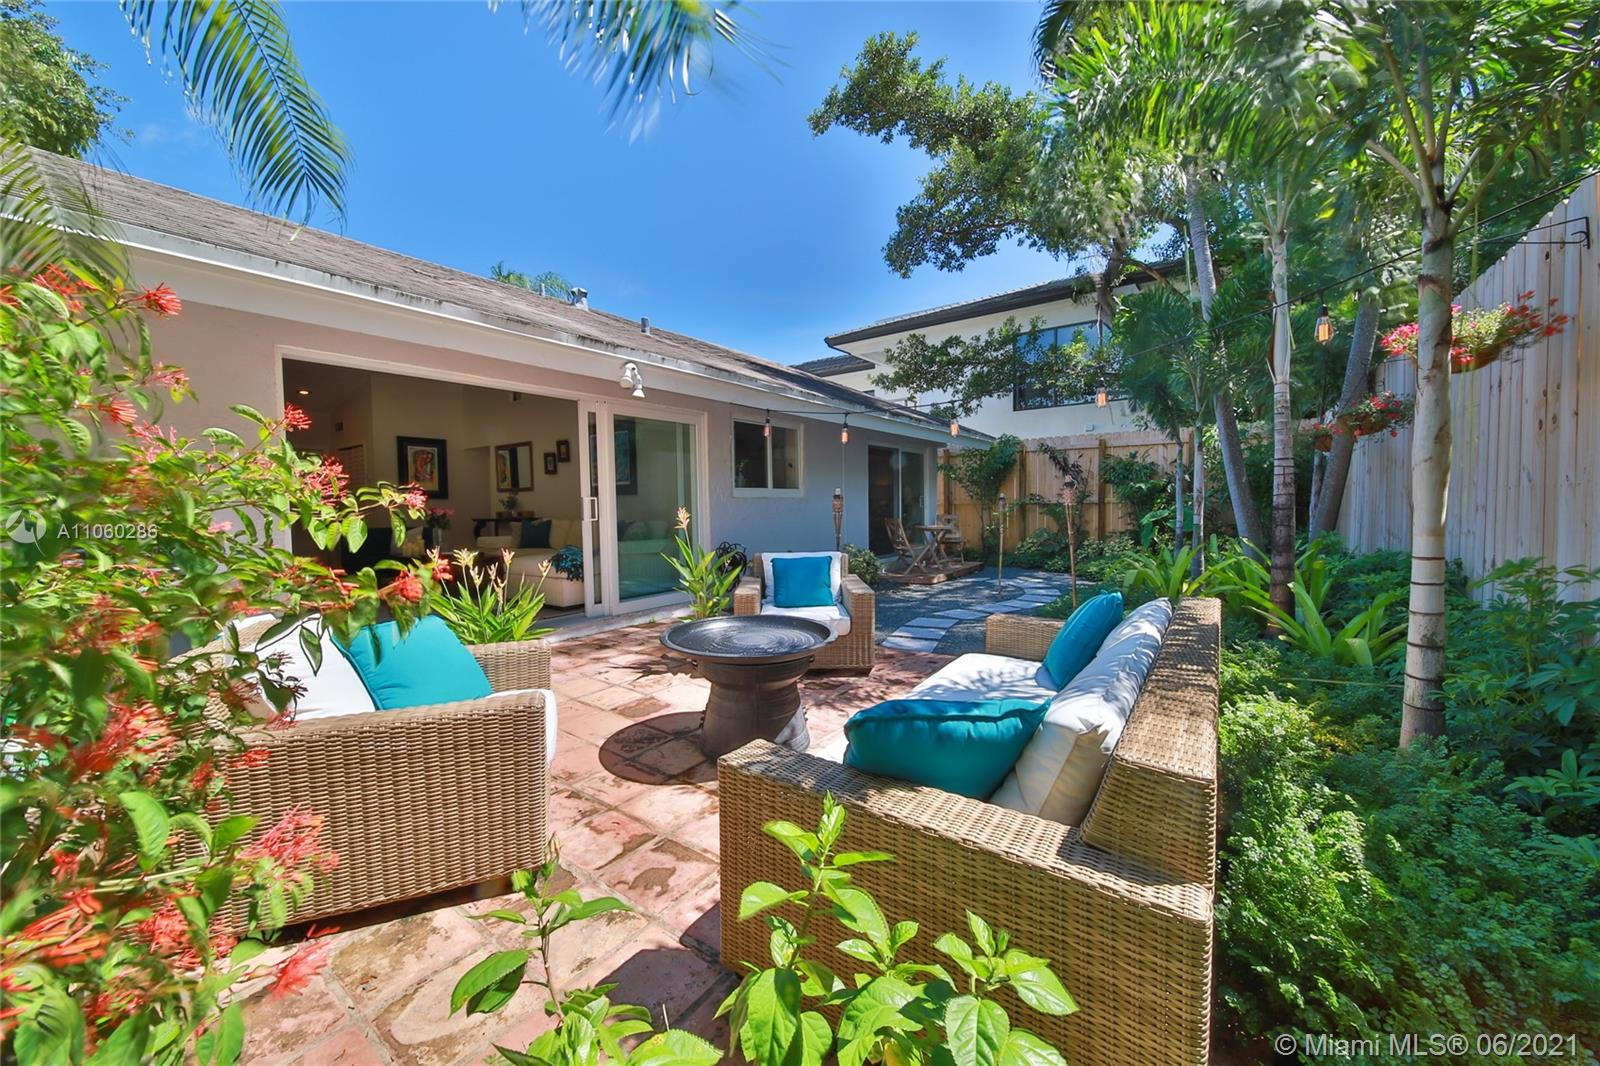 One of a kind, free-standing home in the heart of Coconut Grove. Ultra private & gated, this 2 bed / 2 bath charming home is a gem. Features an open kitchen with quartz countertop and stainless steel appliances, a fenced backyard, vaulted ceilings, and impact windows throughout. Beautiful backyard and landscaping. Washer/ Dryer inside. Two parking spots included! No HOA or approval required. No Flood Zone (X). Close to Cocowalk, restaurants, shops, dog park. A-rated elementary school district. Minutes away to Downtown, Brickell, Miami Airport, Coral Gables, Key Biscayne & the Beaches.